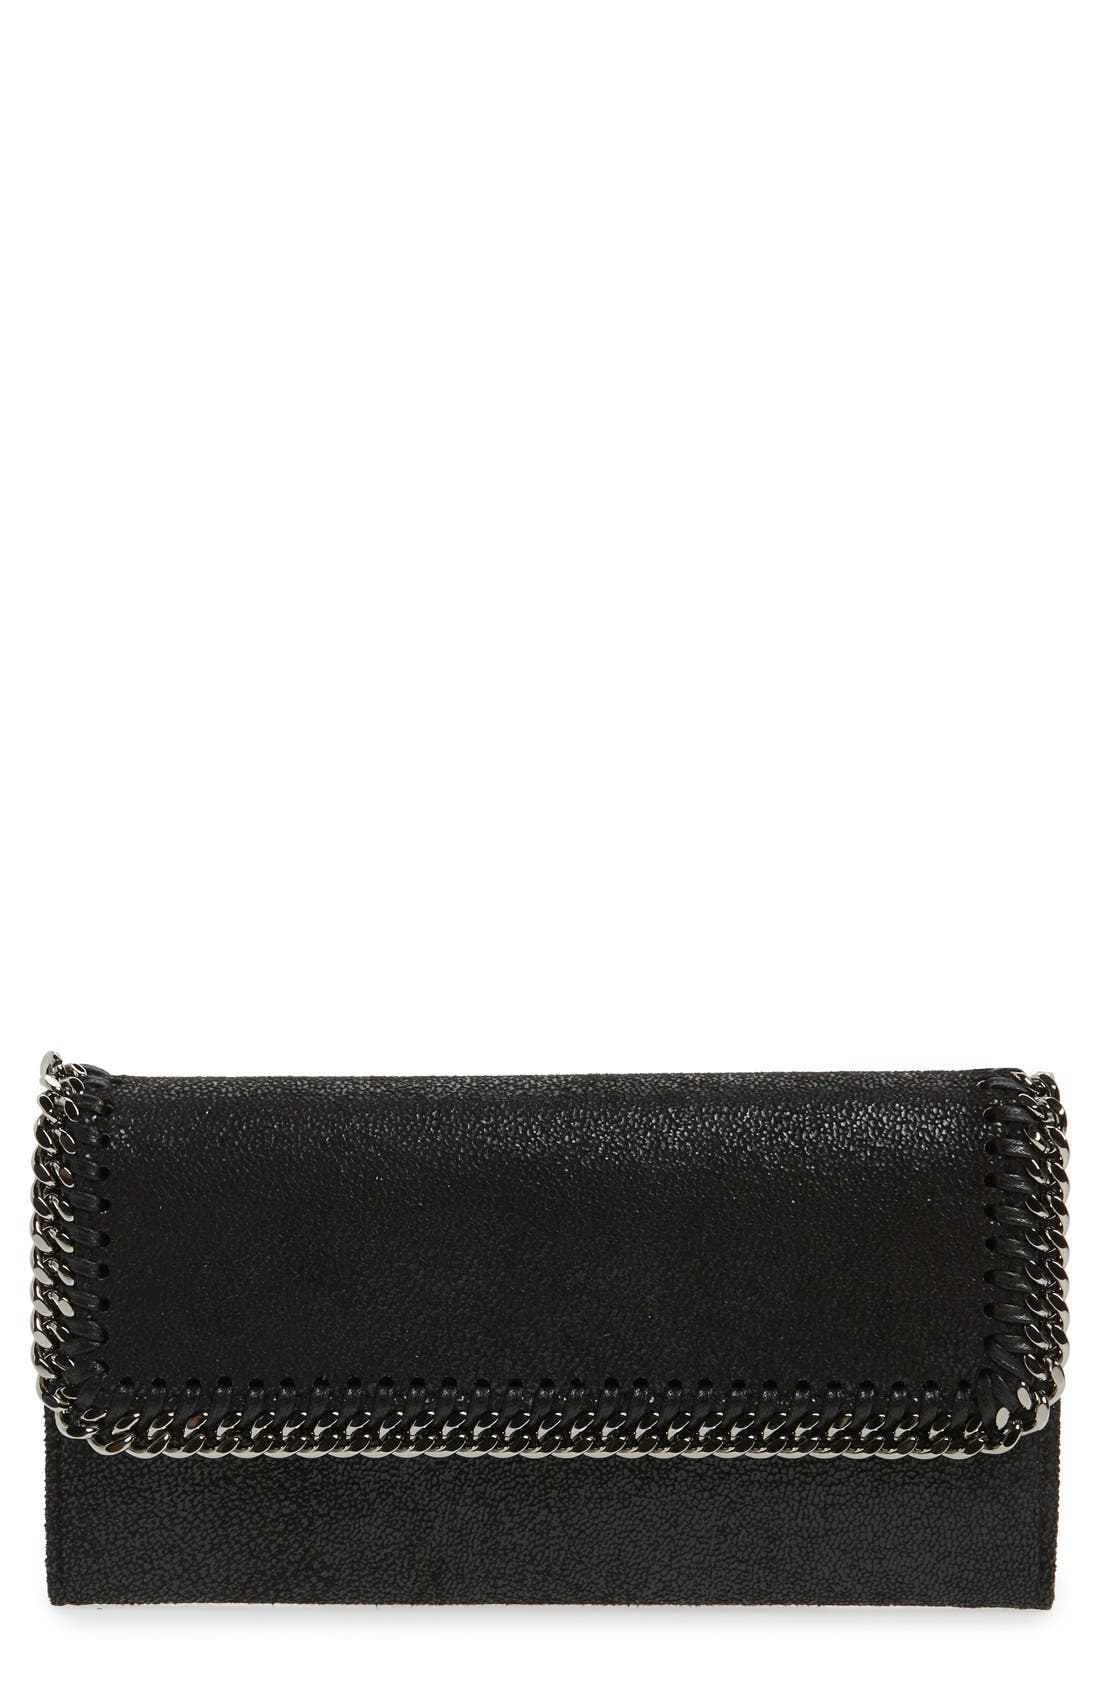 Alternate Image 1 Selected - Stella McCartney 'Falabella - Rainbow POP' Faux Leather Continental Wallet